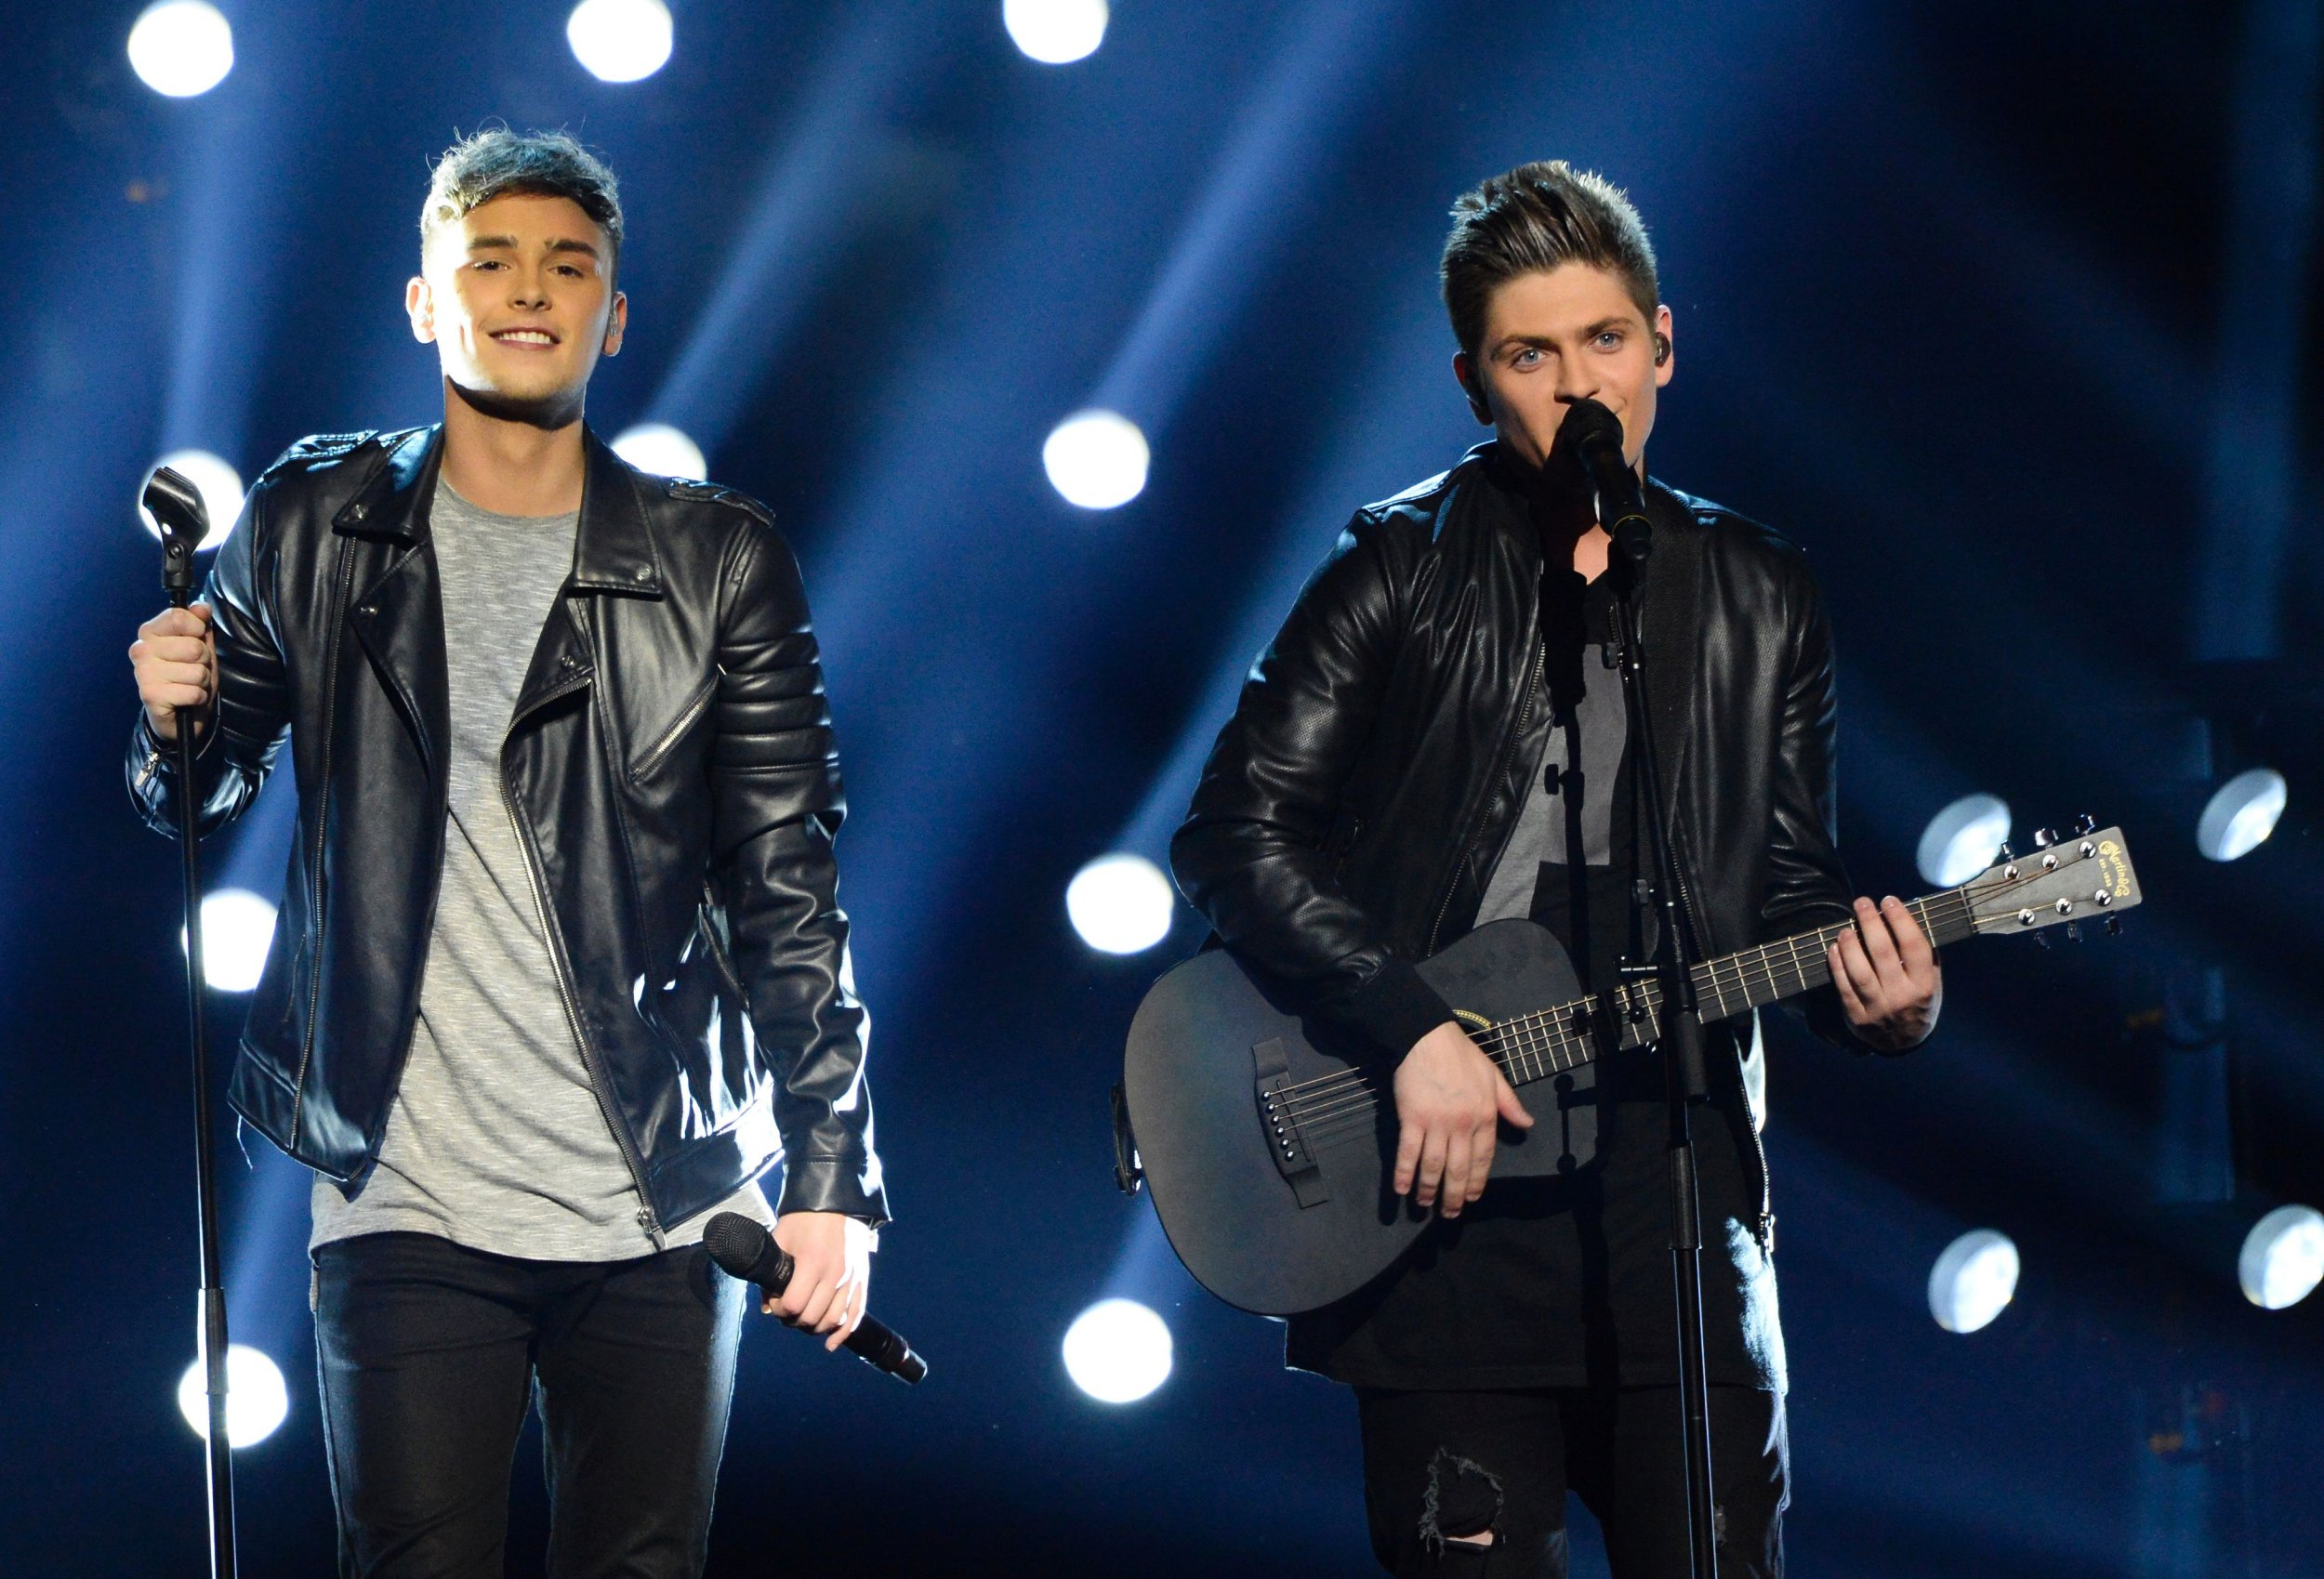 Joe and Jake representing Great Britain with the song 'You're Not Alone' performs during the final of the Eurovision Song Contest 2016 Grand Final in Stockholm, on May 14, 2016. / AFP PHOTO / JONATHAN NACKSTRANDJONATHAN NACKSTRAND/AFP/Getty Images